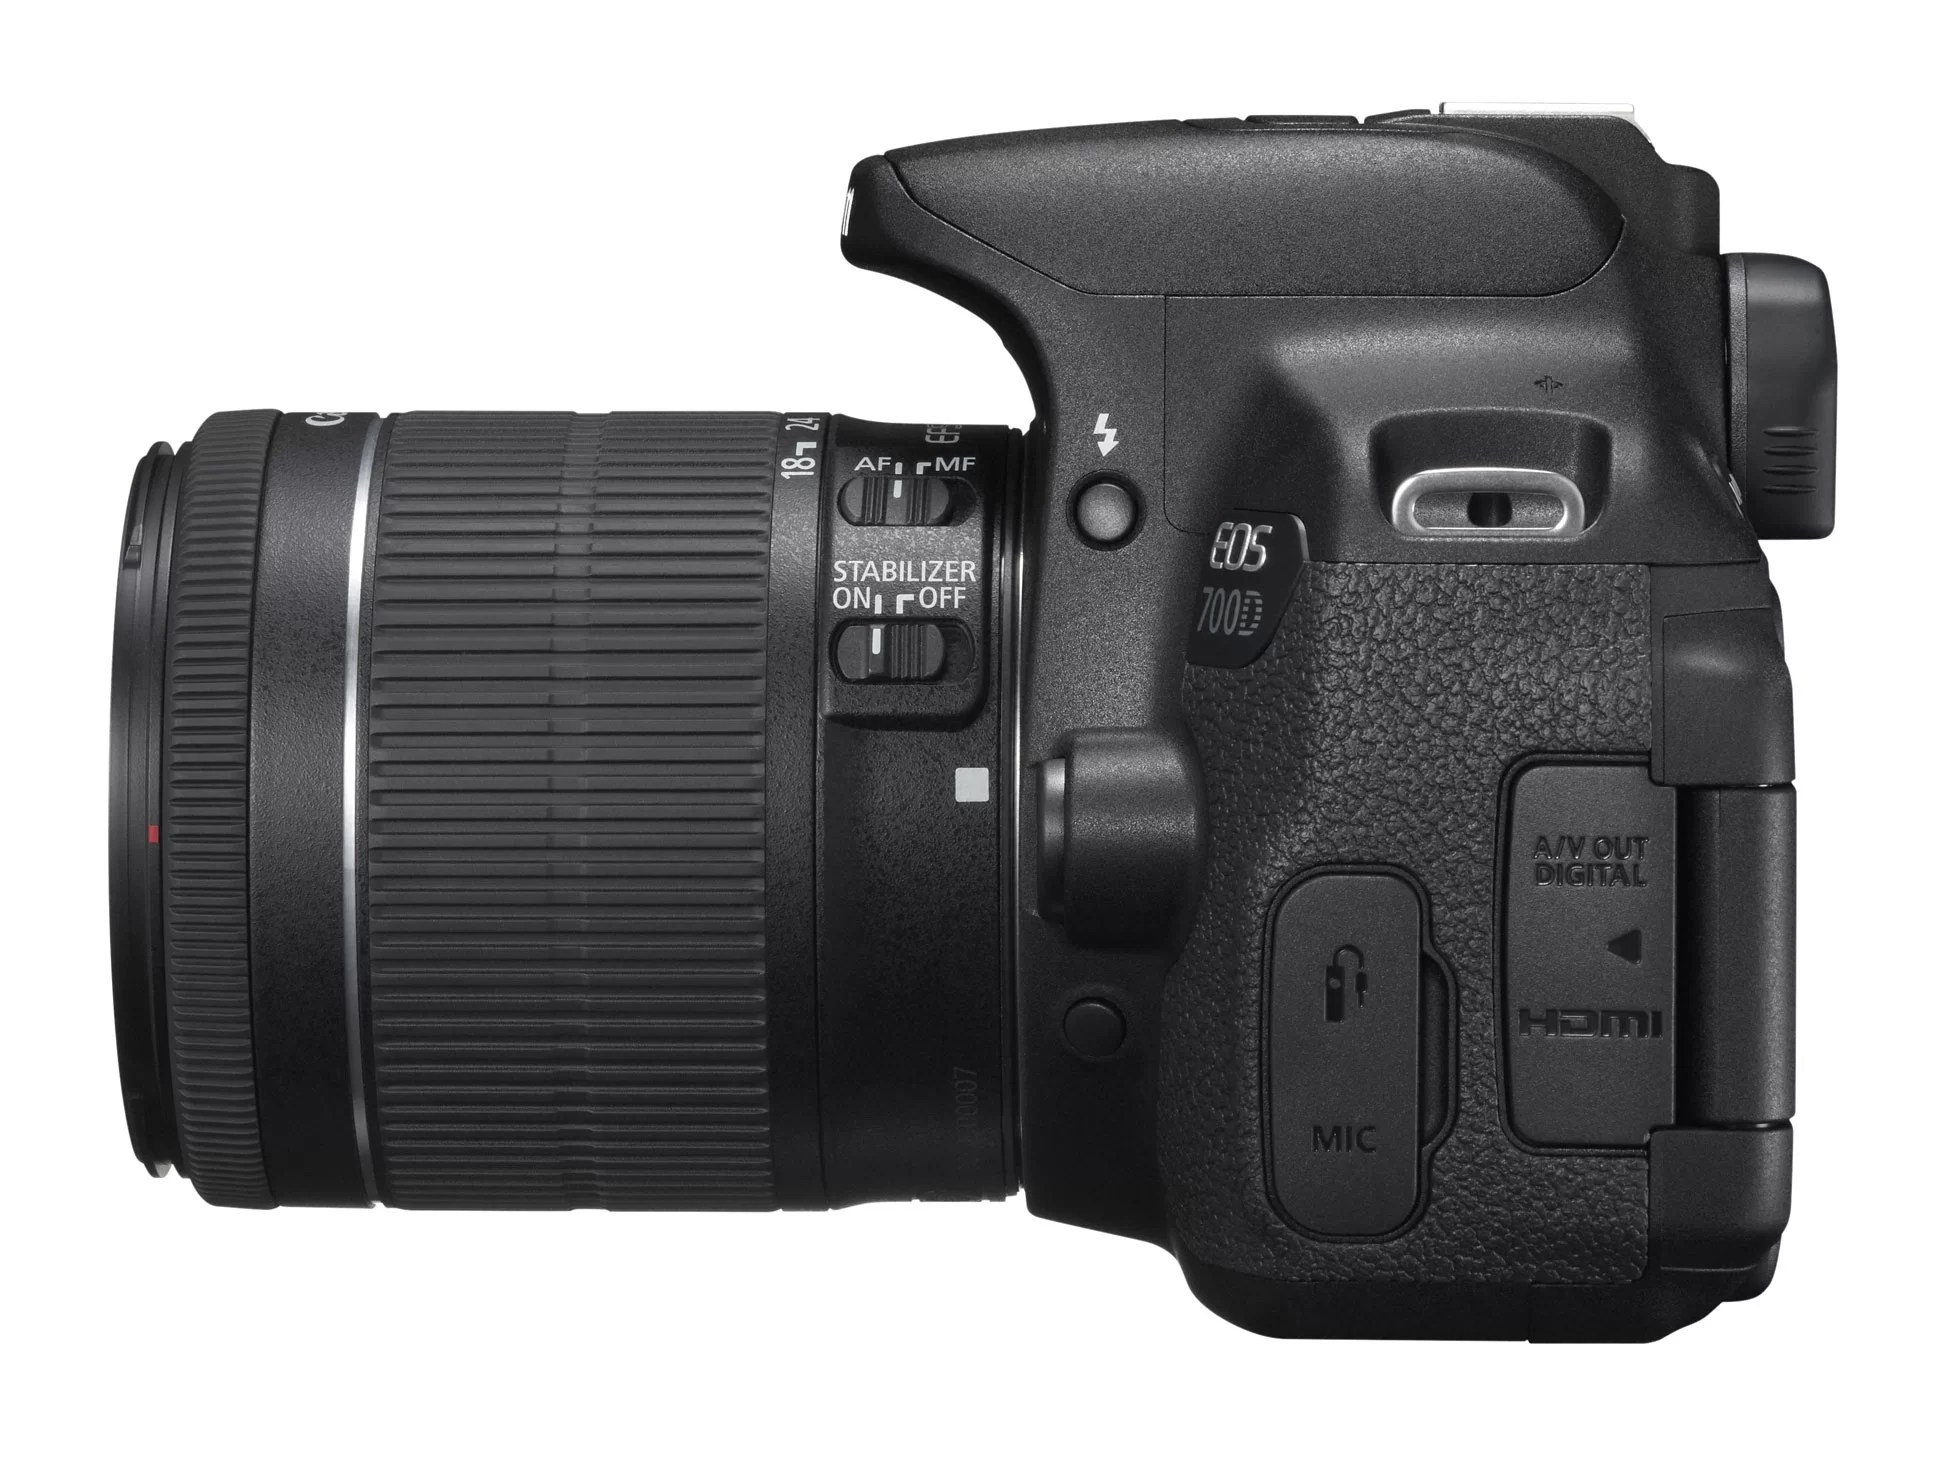 Canon EOS 700D DSLR Camera with EF-S 18-135mm f/3 5-5 6 IS STM Lens